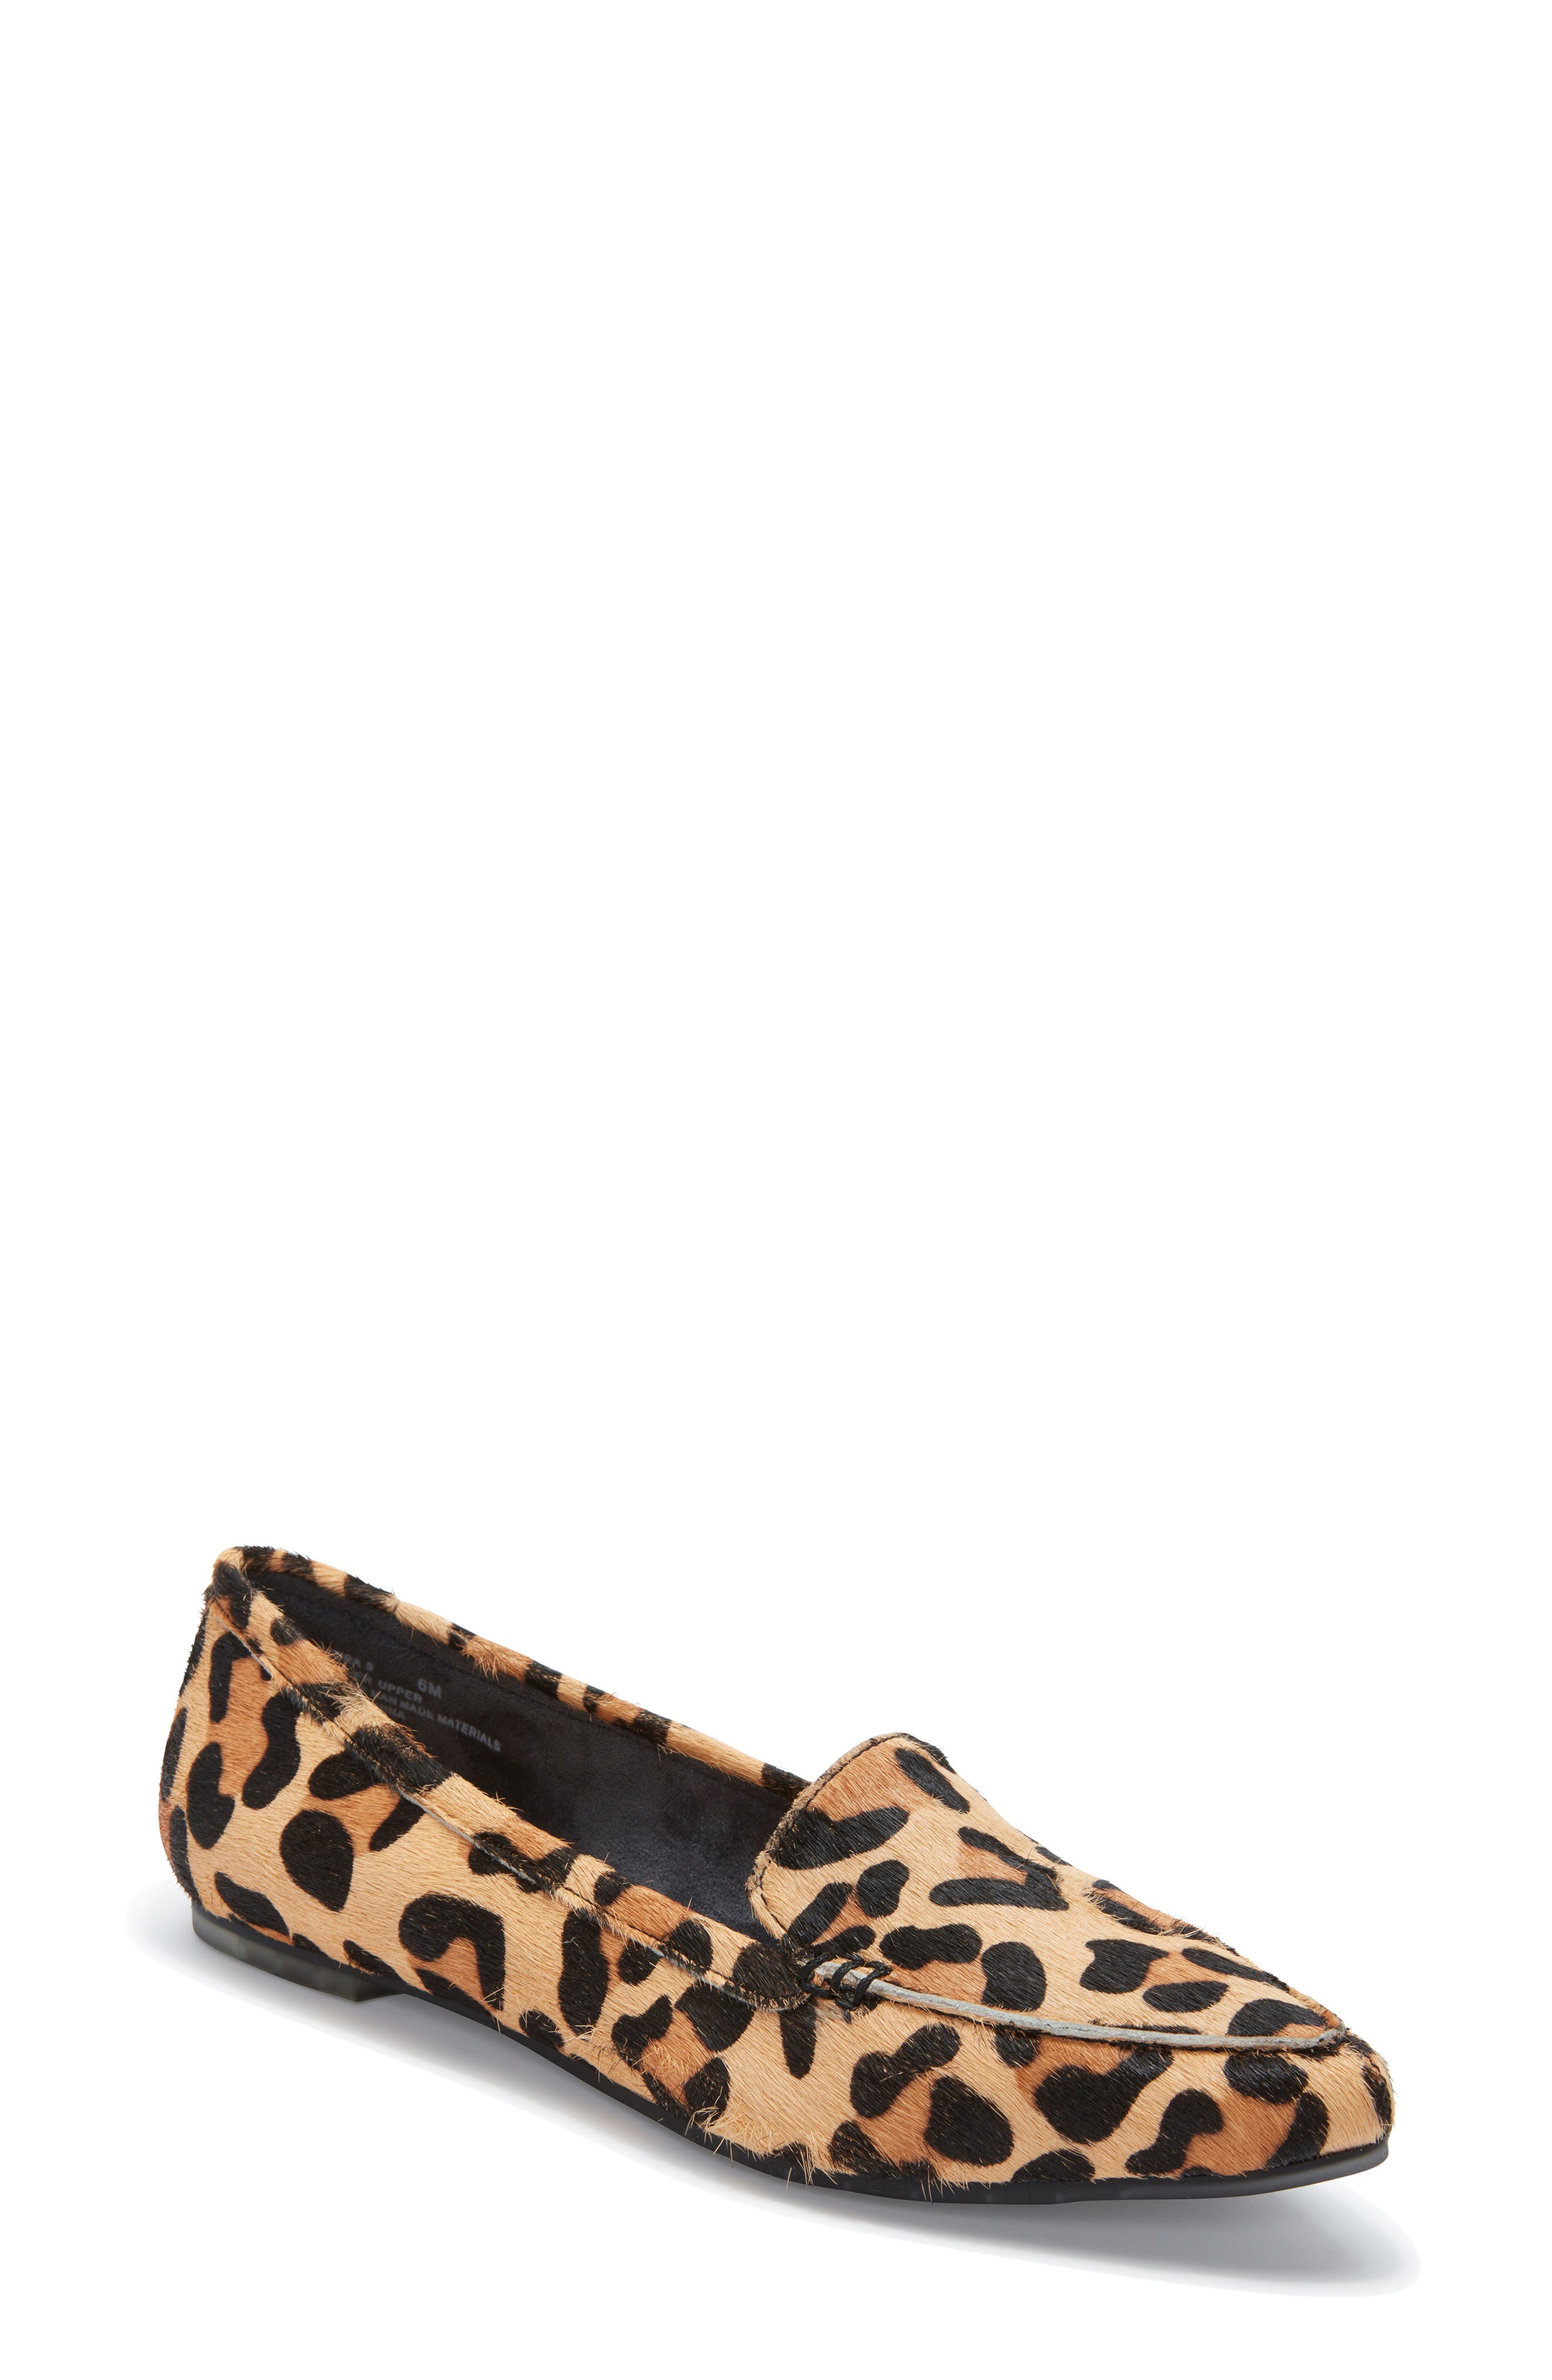 ME TOO Audra Genuine Calf Hair Loafer Flat, Main, color, TAN JAGUAR CALF HAIR